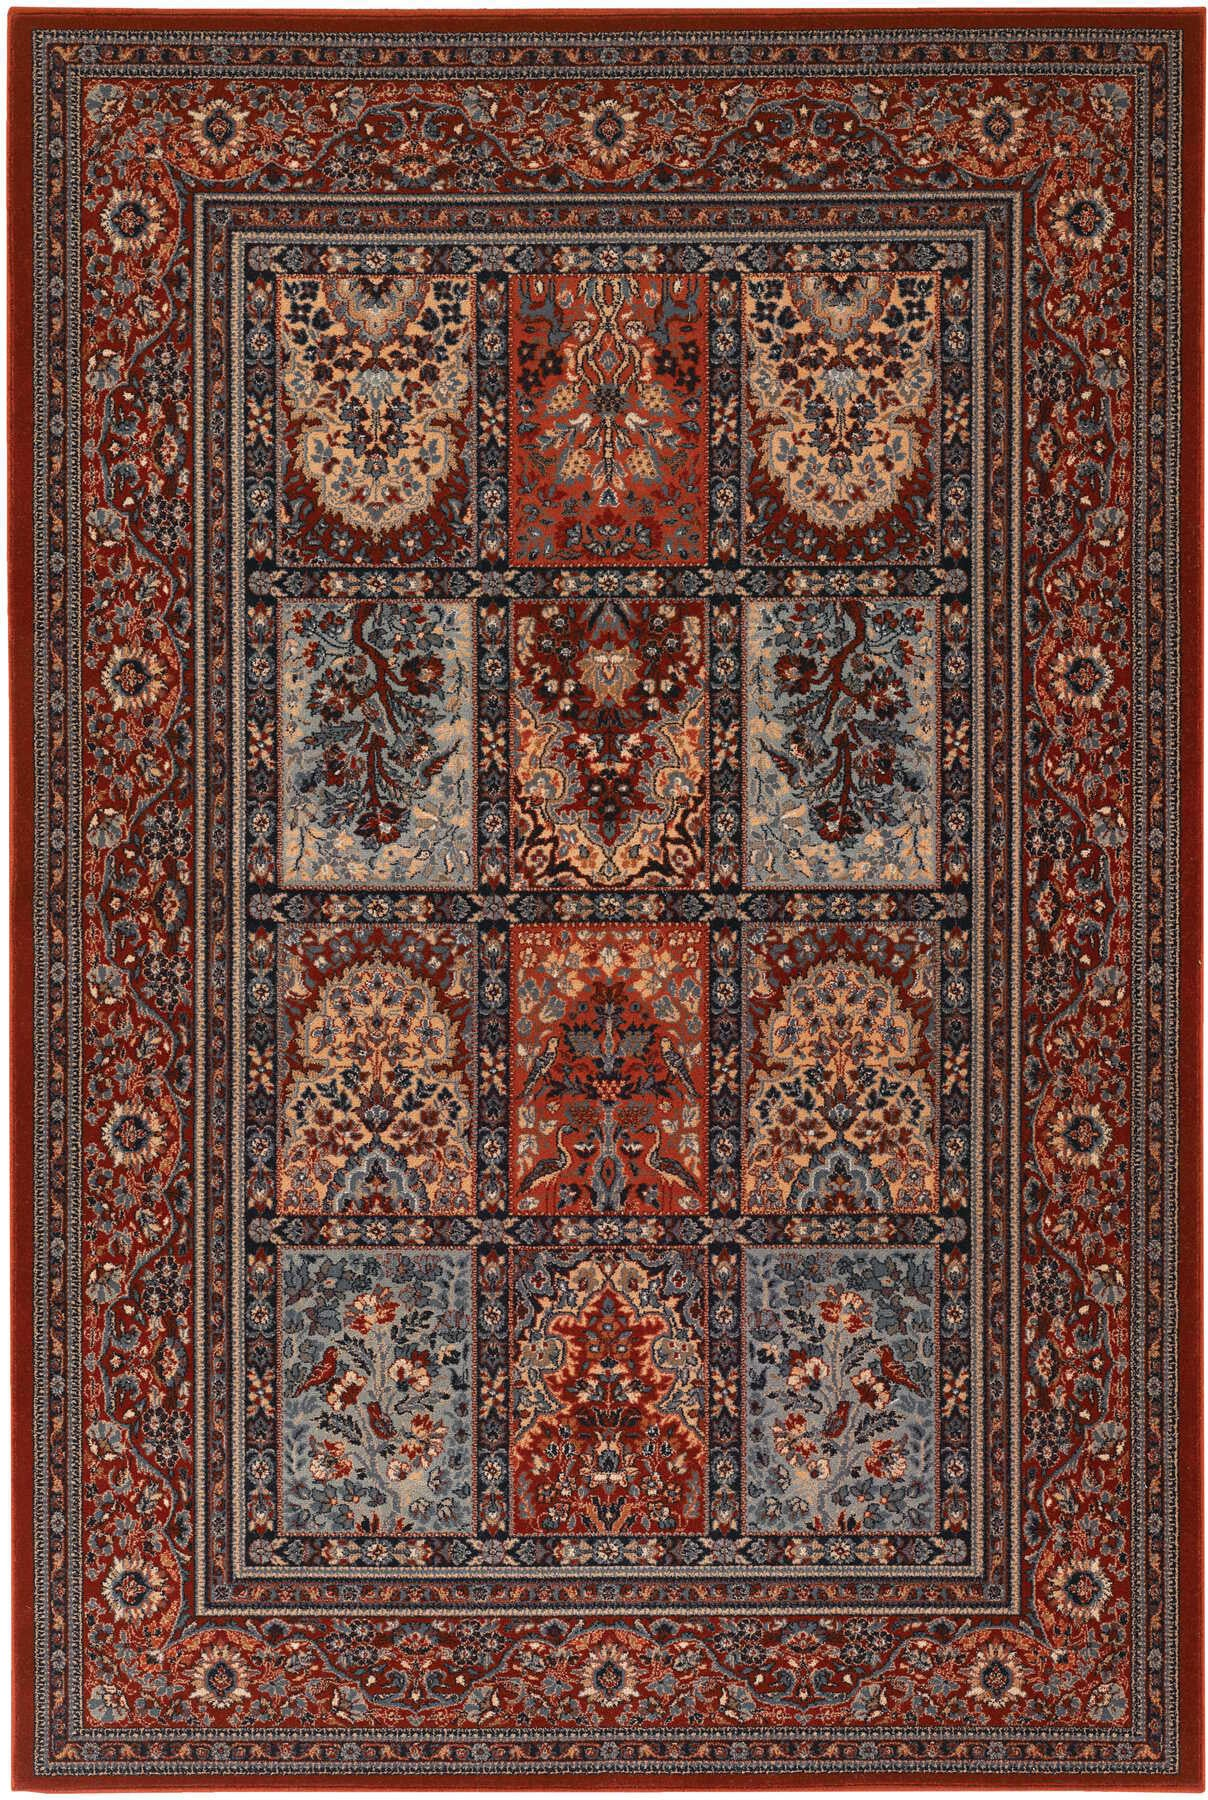 Couristan Timeless Treasures Vintage Baktiari Area Rug Rug